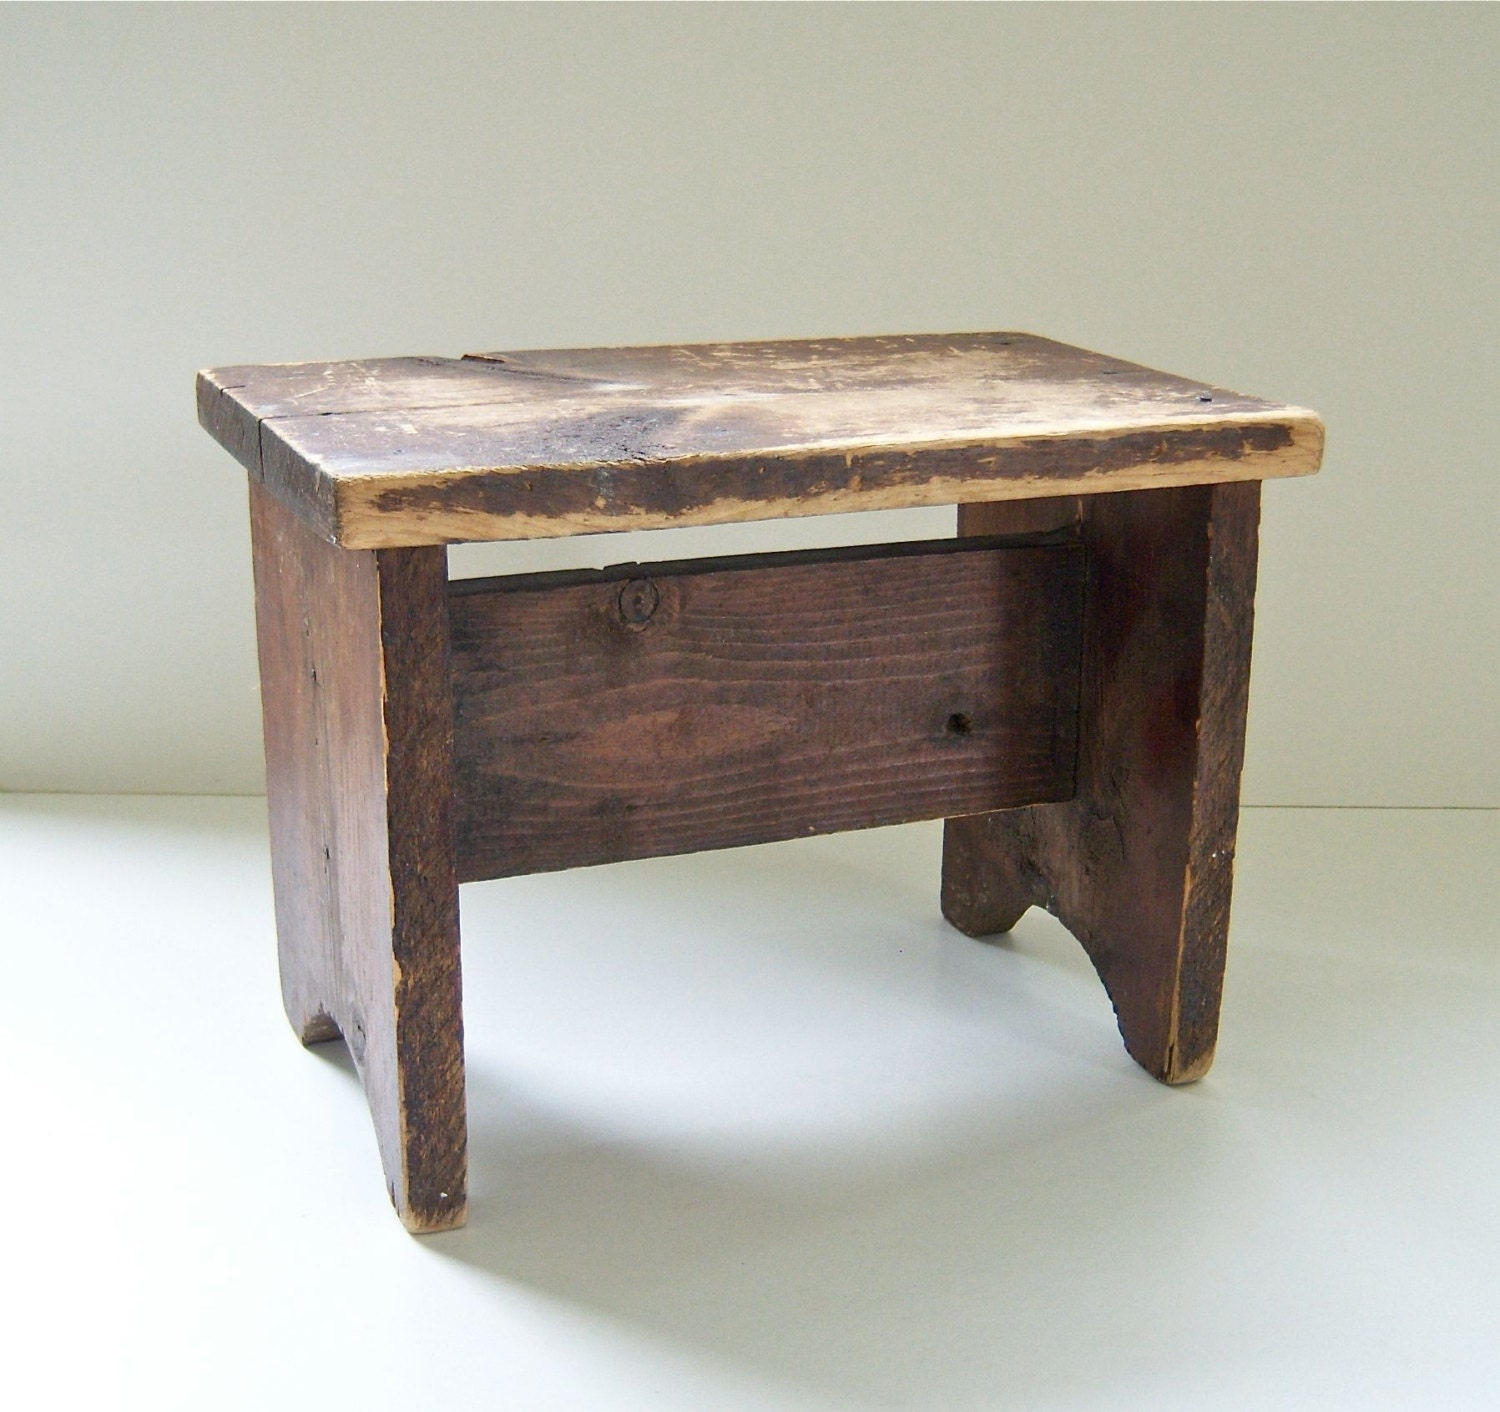 Vintage Wooden Bench Small Step Stool Child Size By